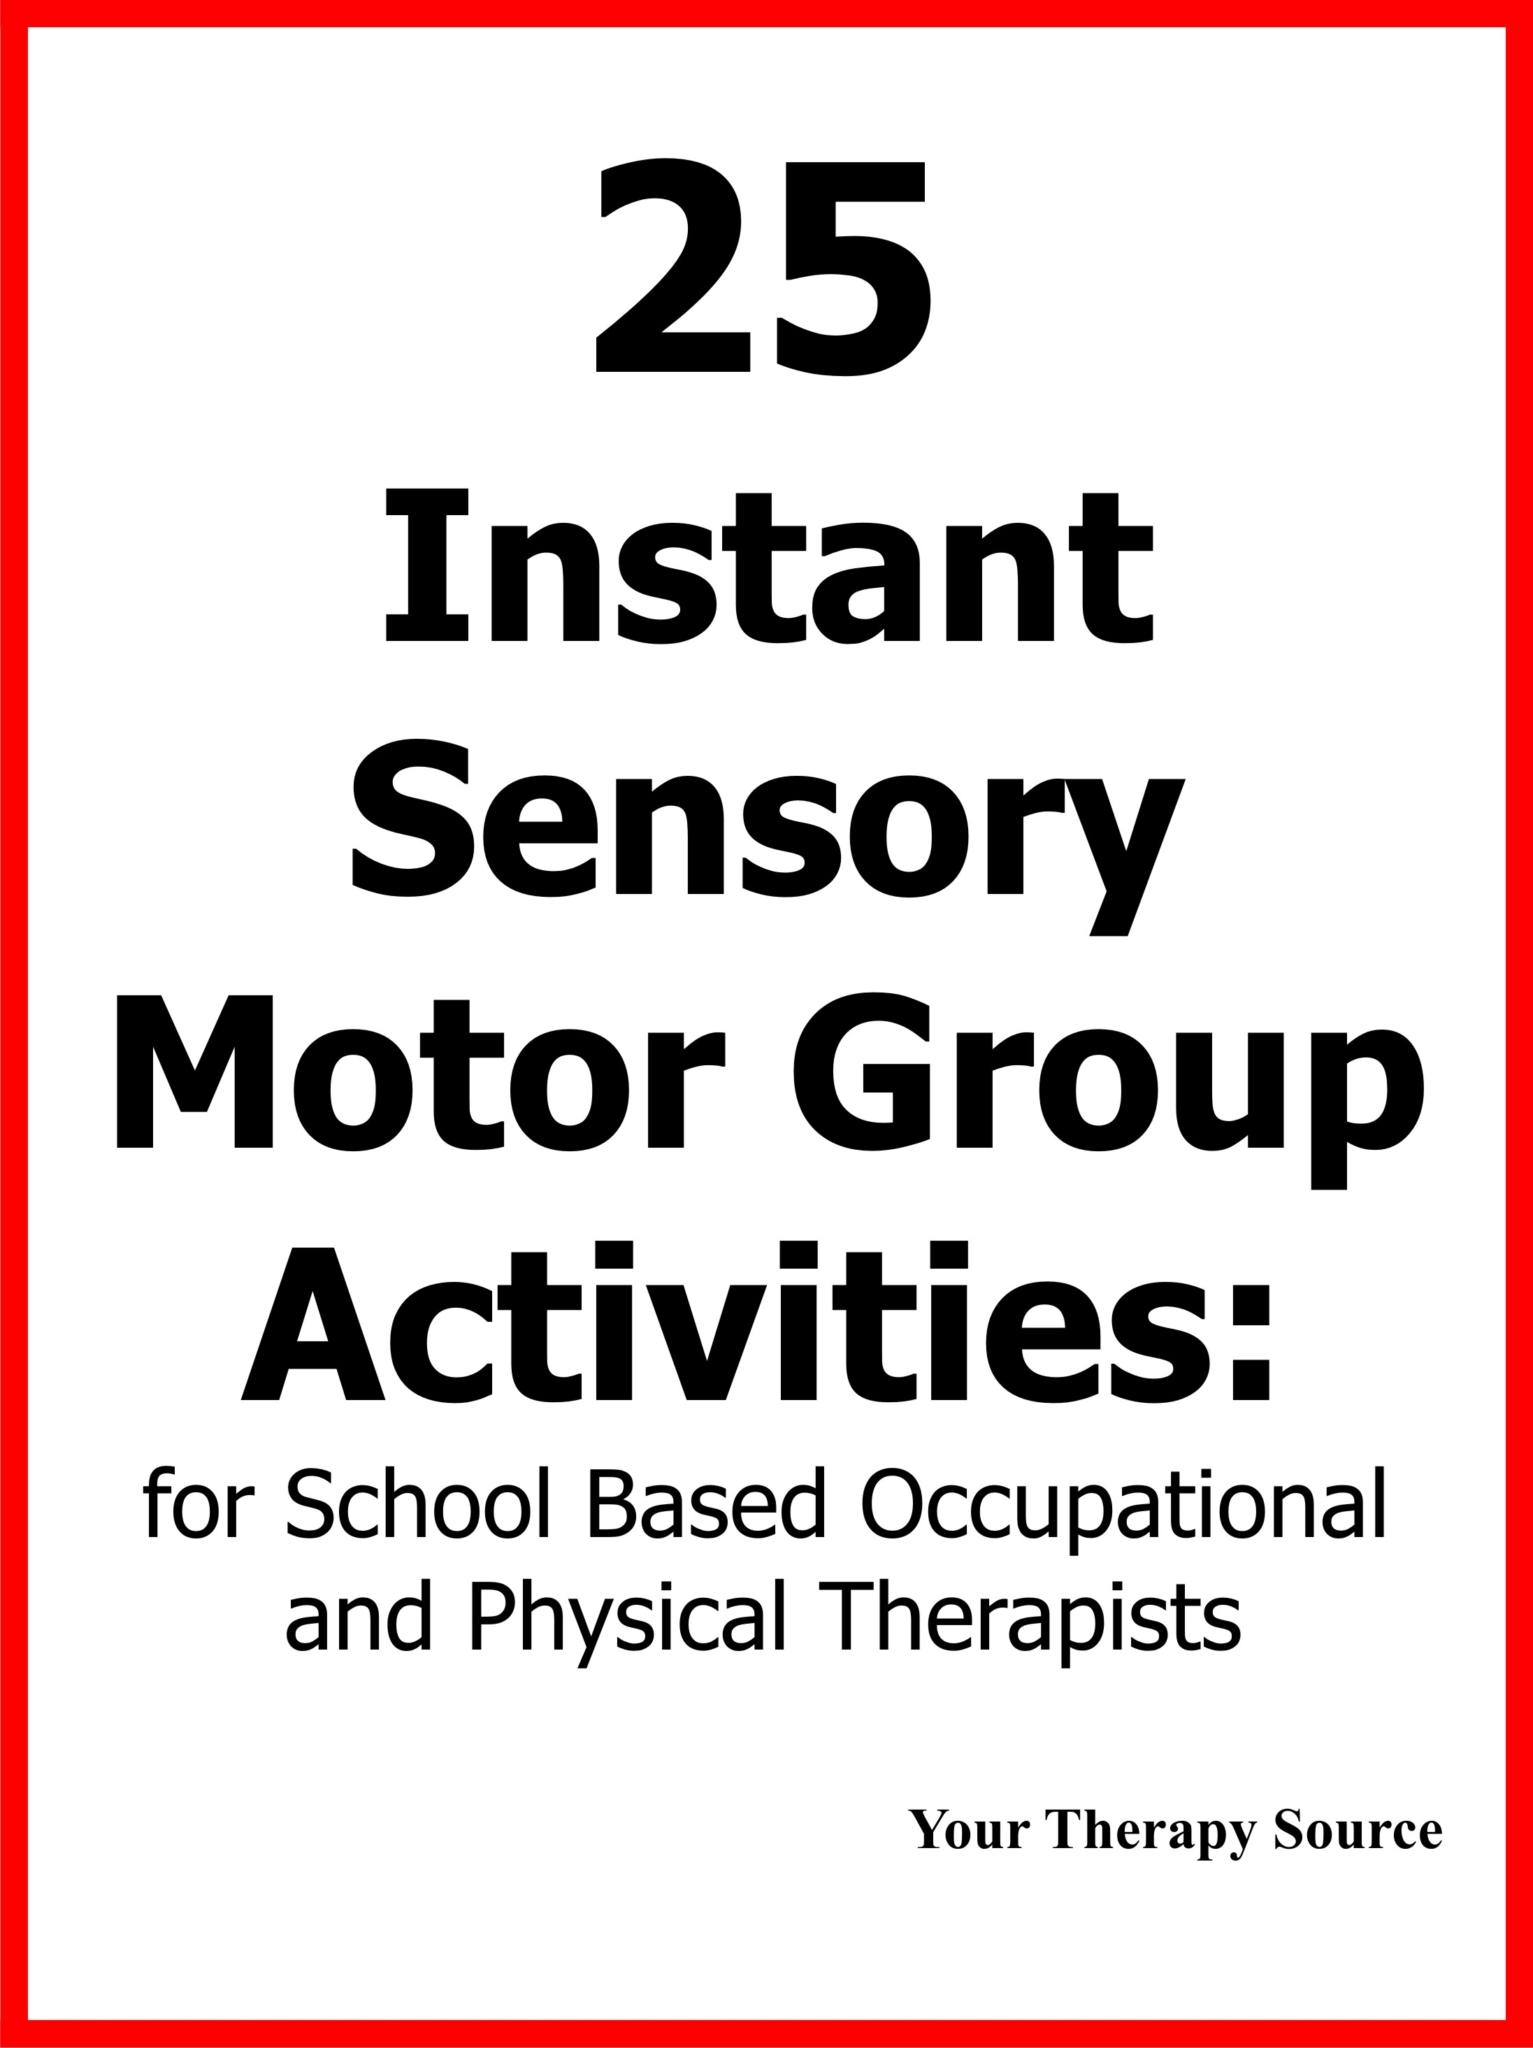 instant sensory motor group activities from https://www.yourtherapysource.com/instant.html